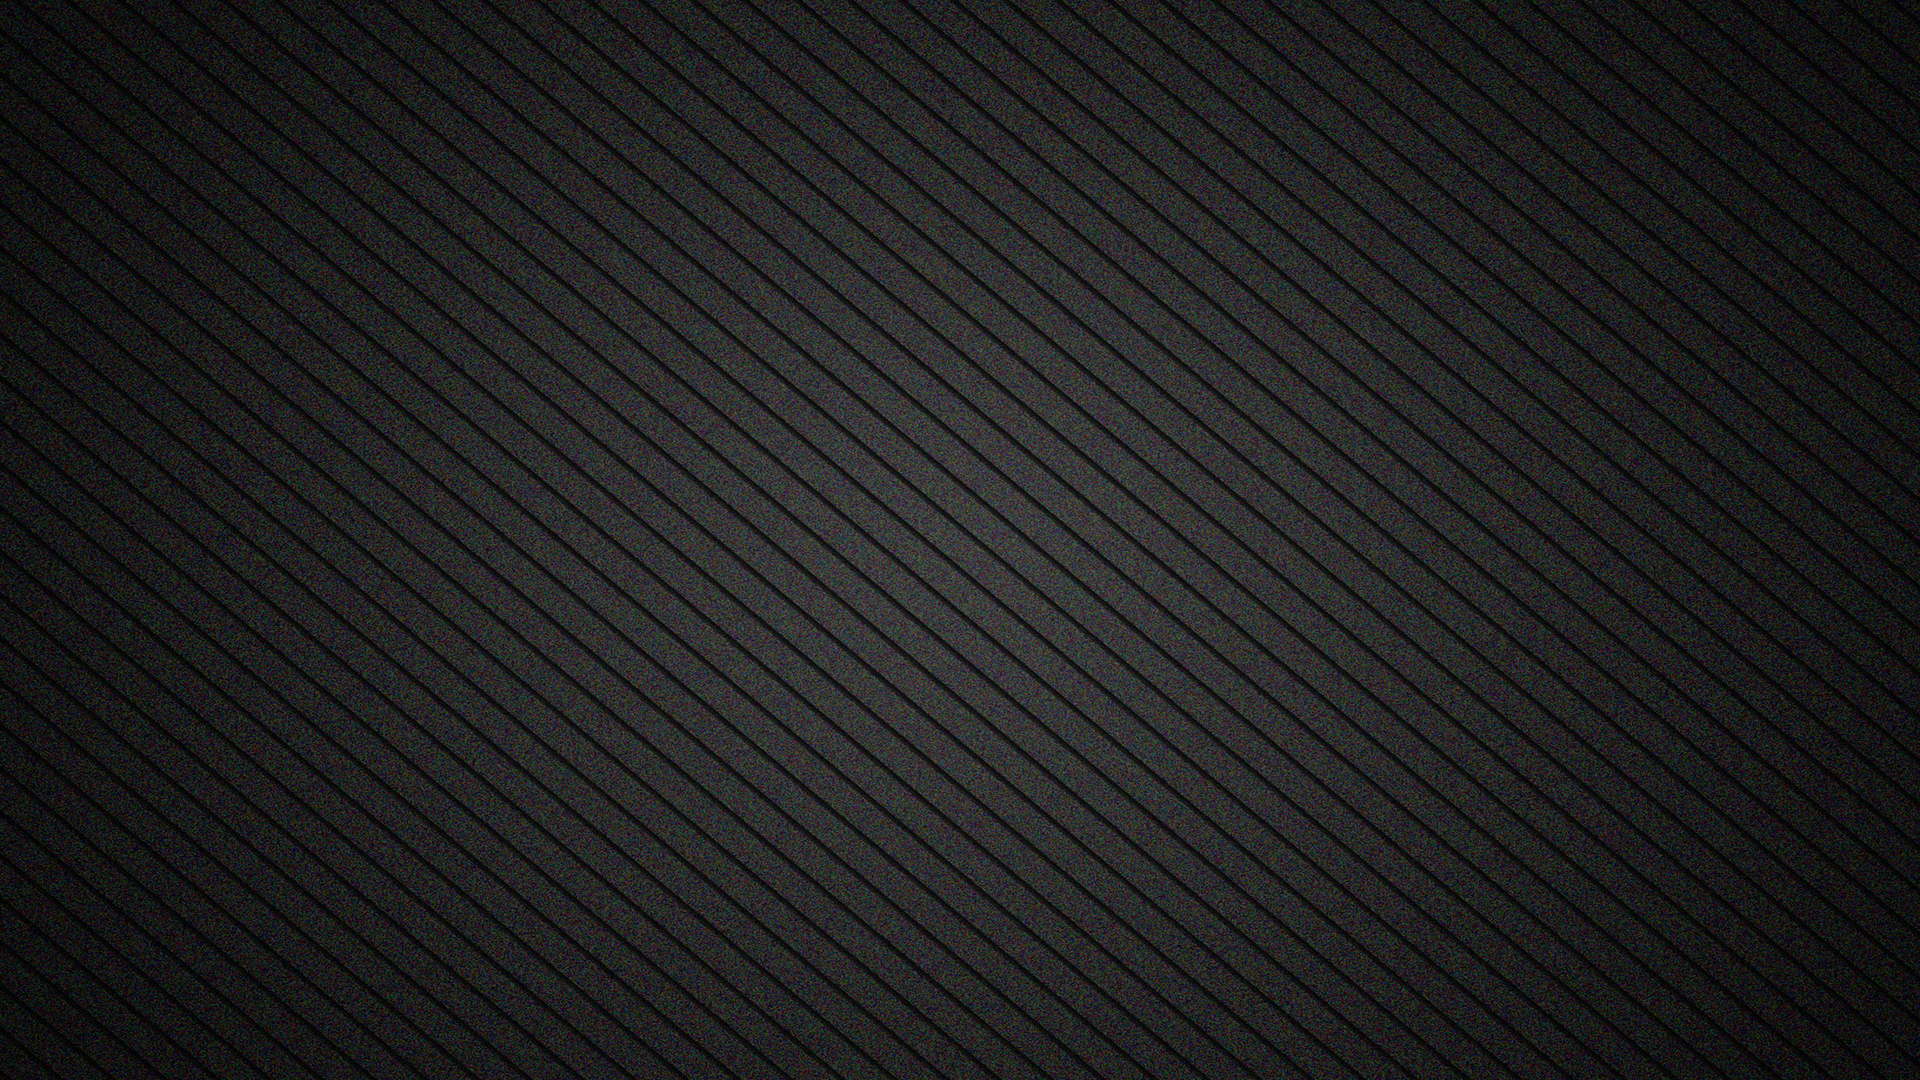 black and white abstract wallpapers hd